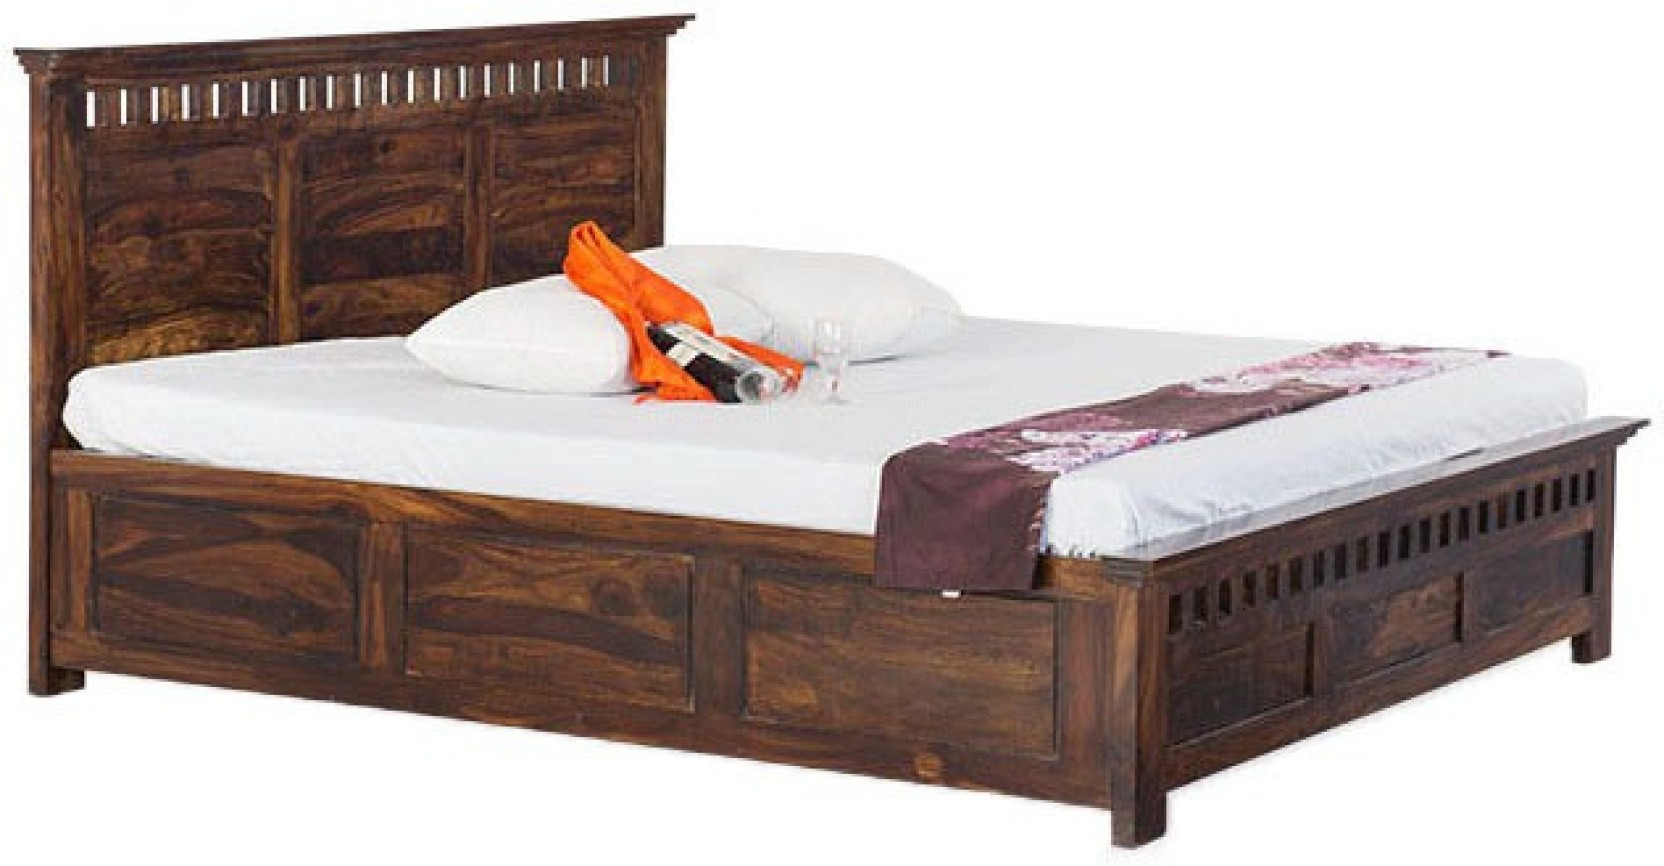 Smart Choice Furniture Smart Choice Rosewood Sheesham Jibd11 Matte Finish Solid Wood King Size Bed Solid Wood King Box Bed